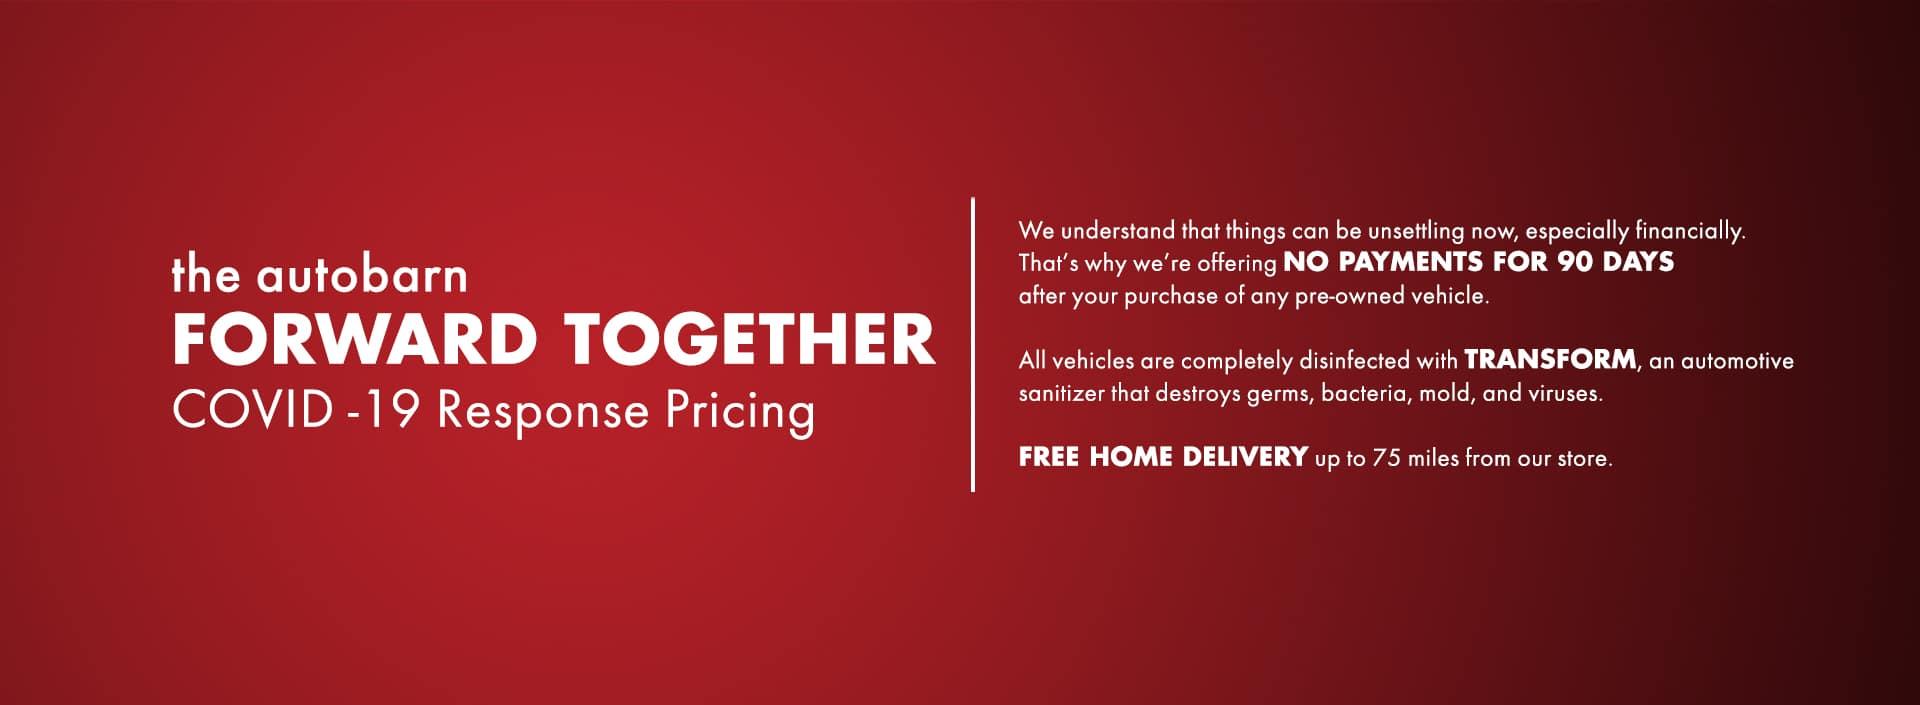 Moving Forward Together COVID-19 Pricing